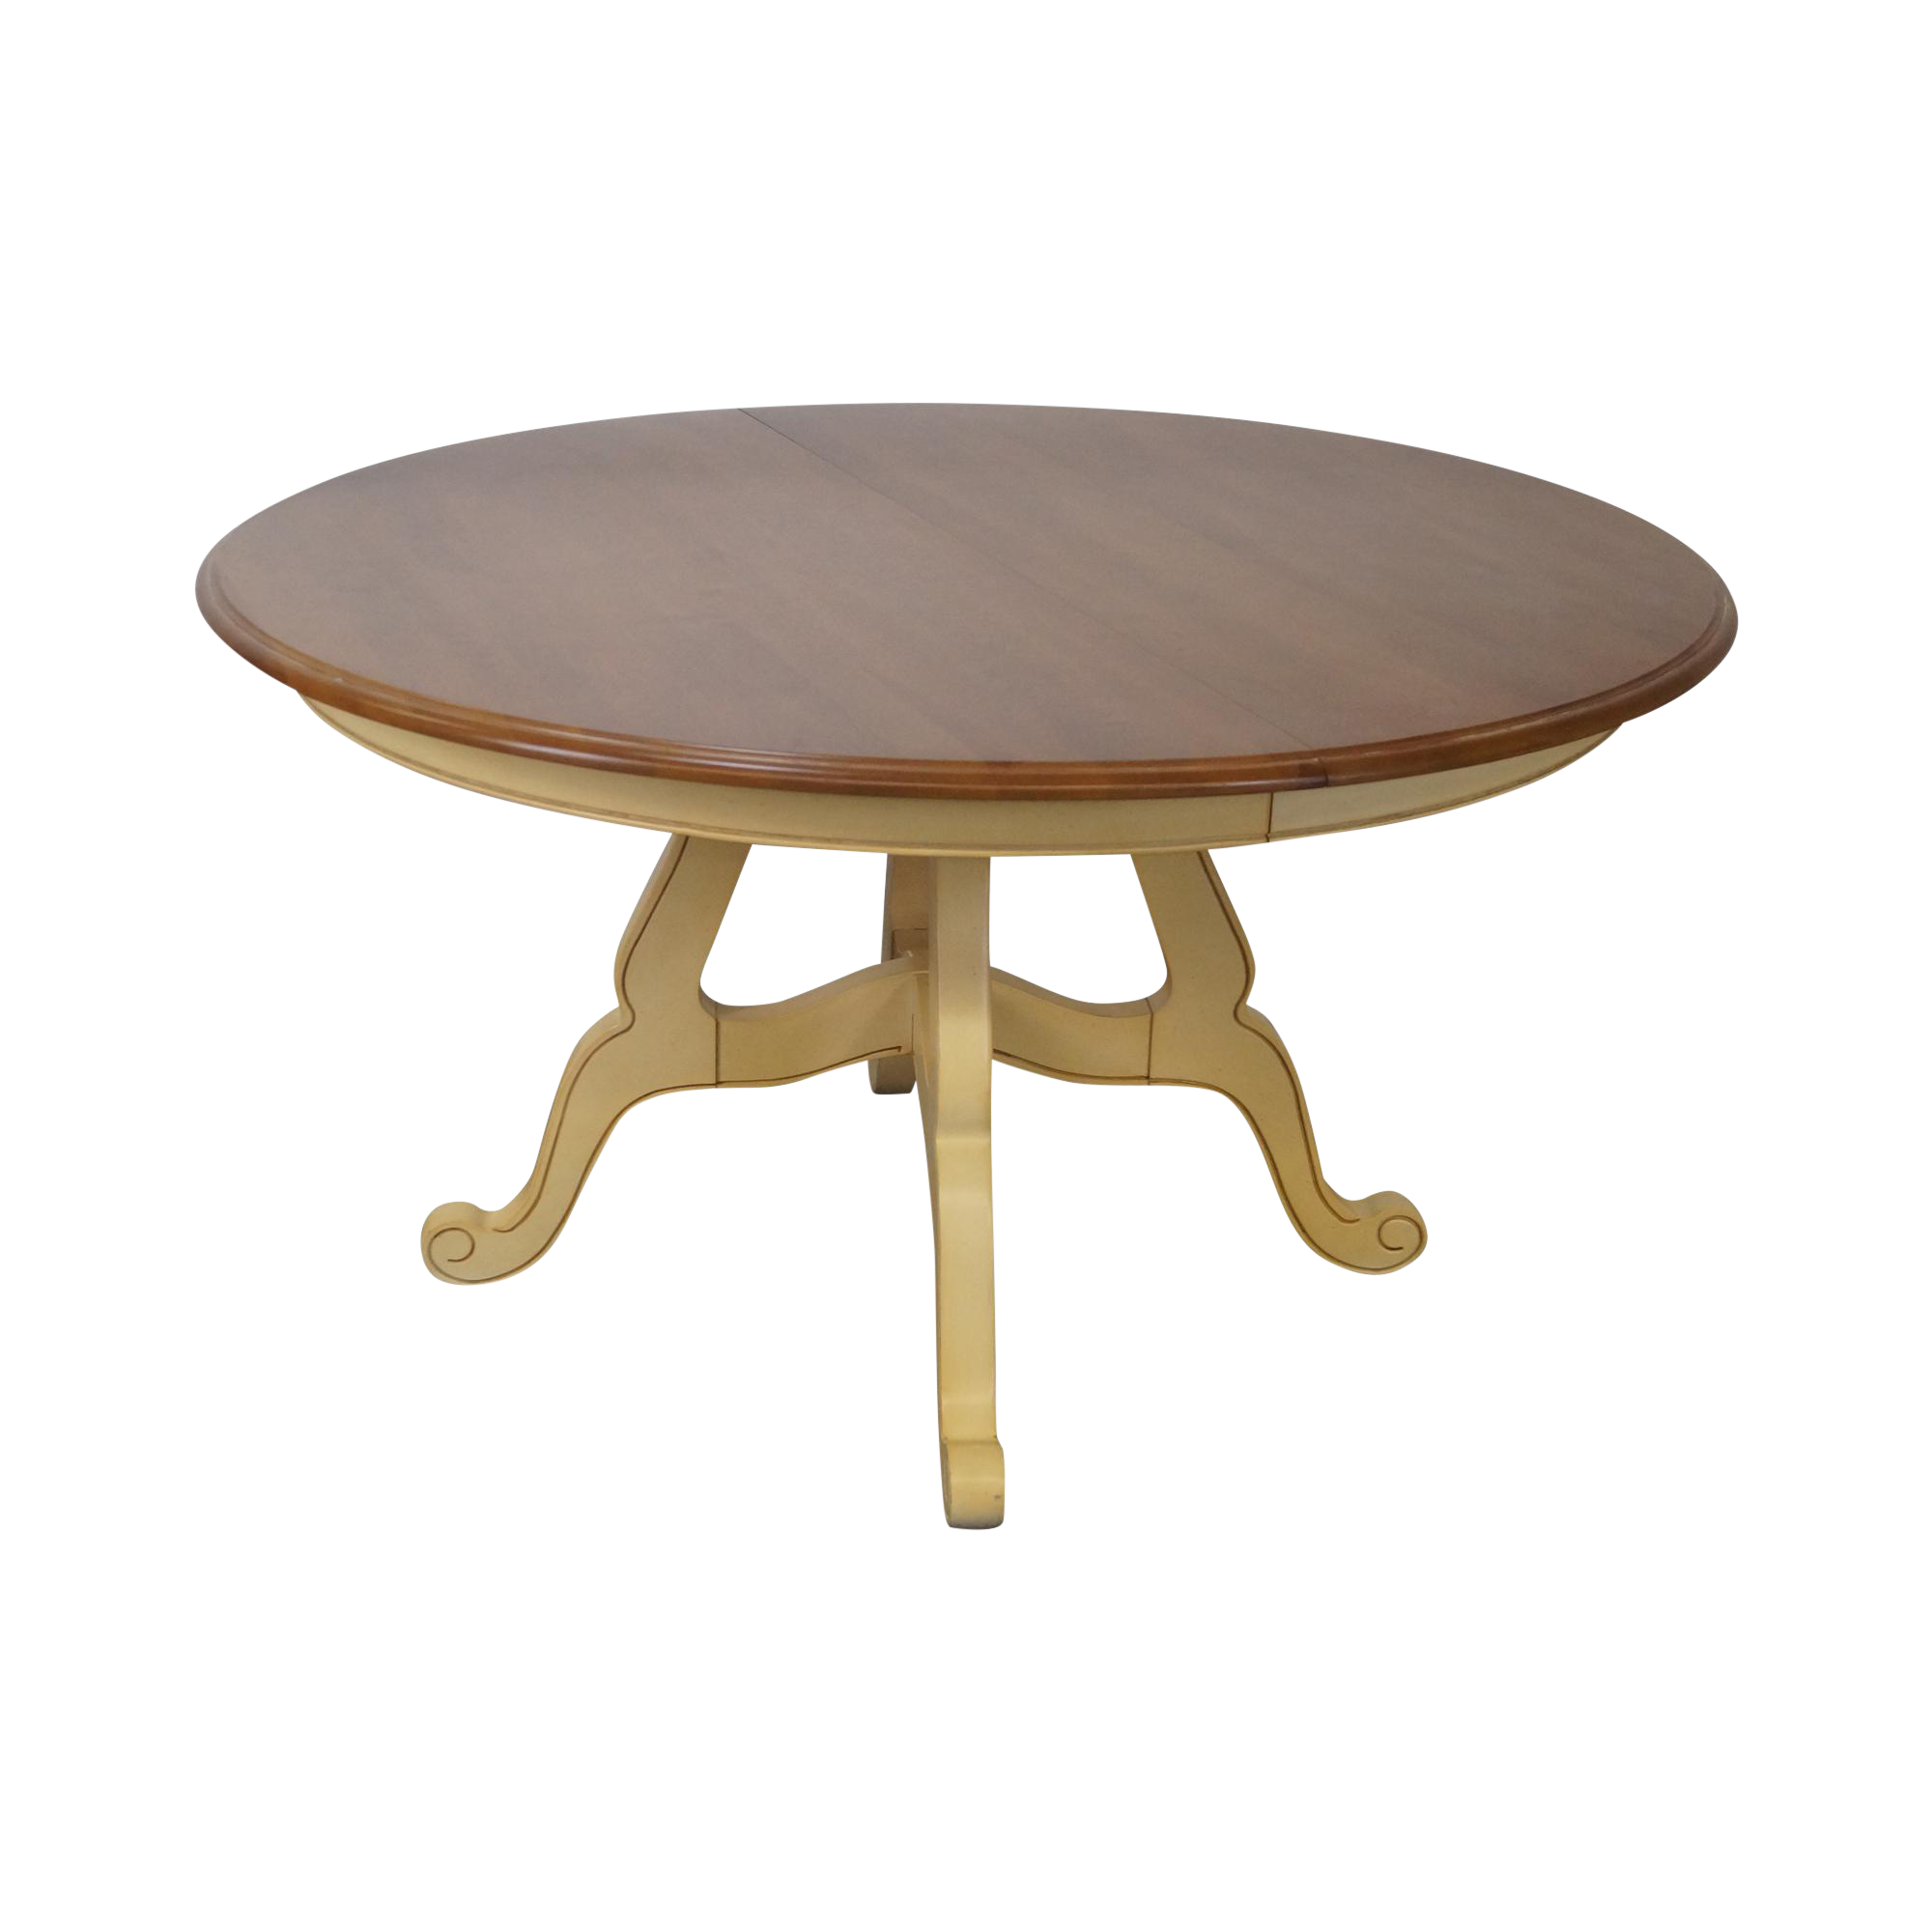 Ethan Allen New Country Coffee Table: Ethan Allen Country French Round Dining Table